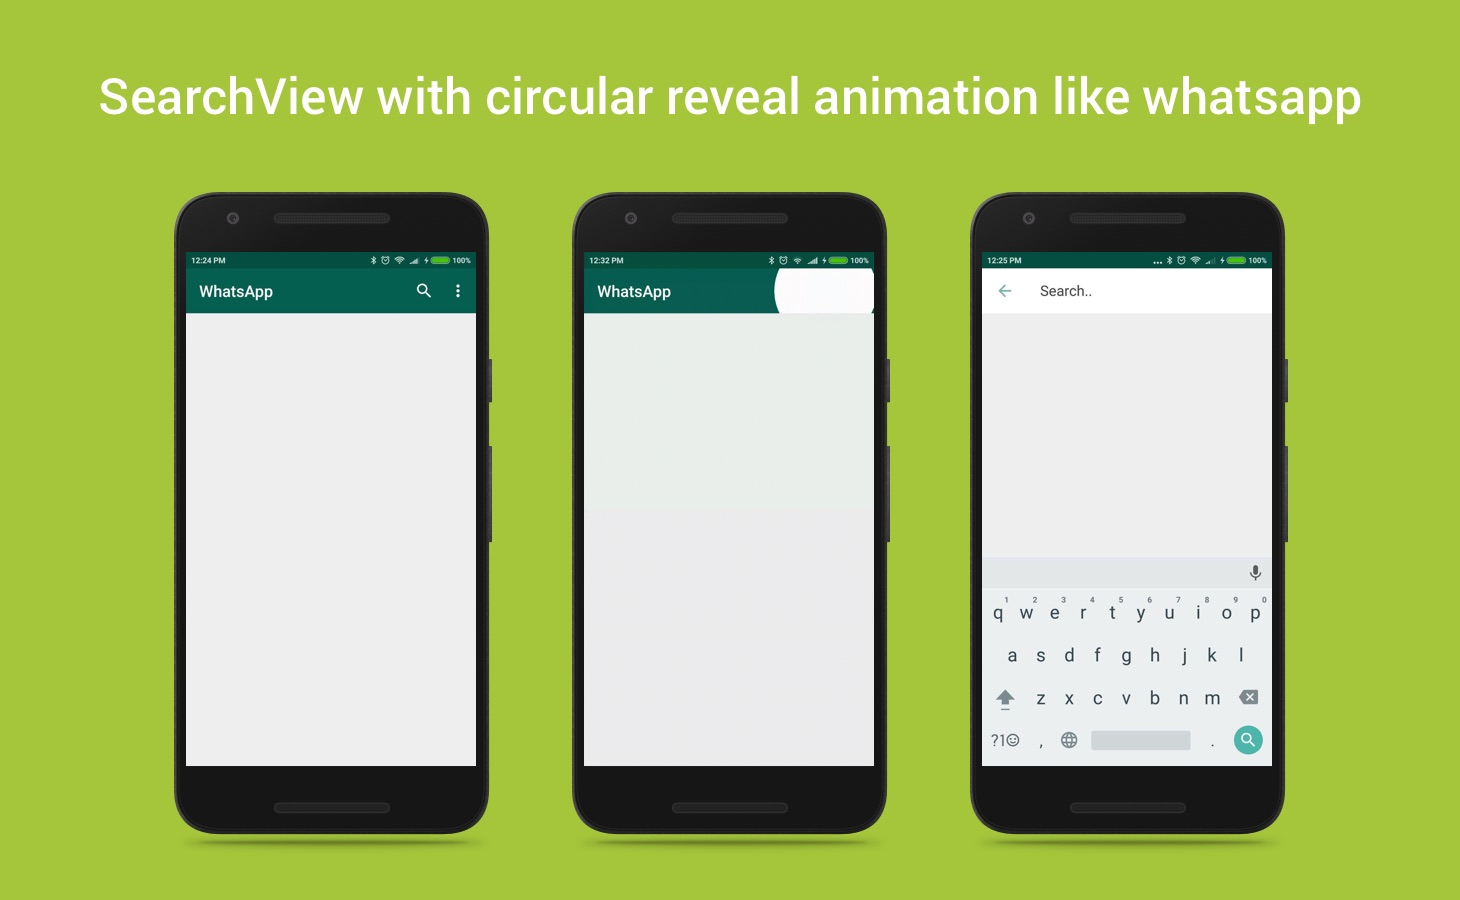 SearchView with circular reveal animation like whatsapp